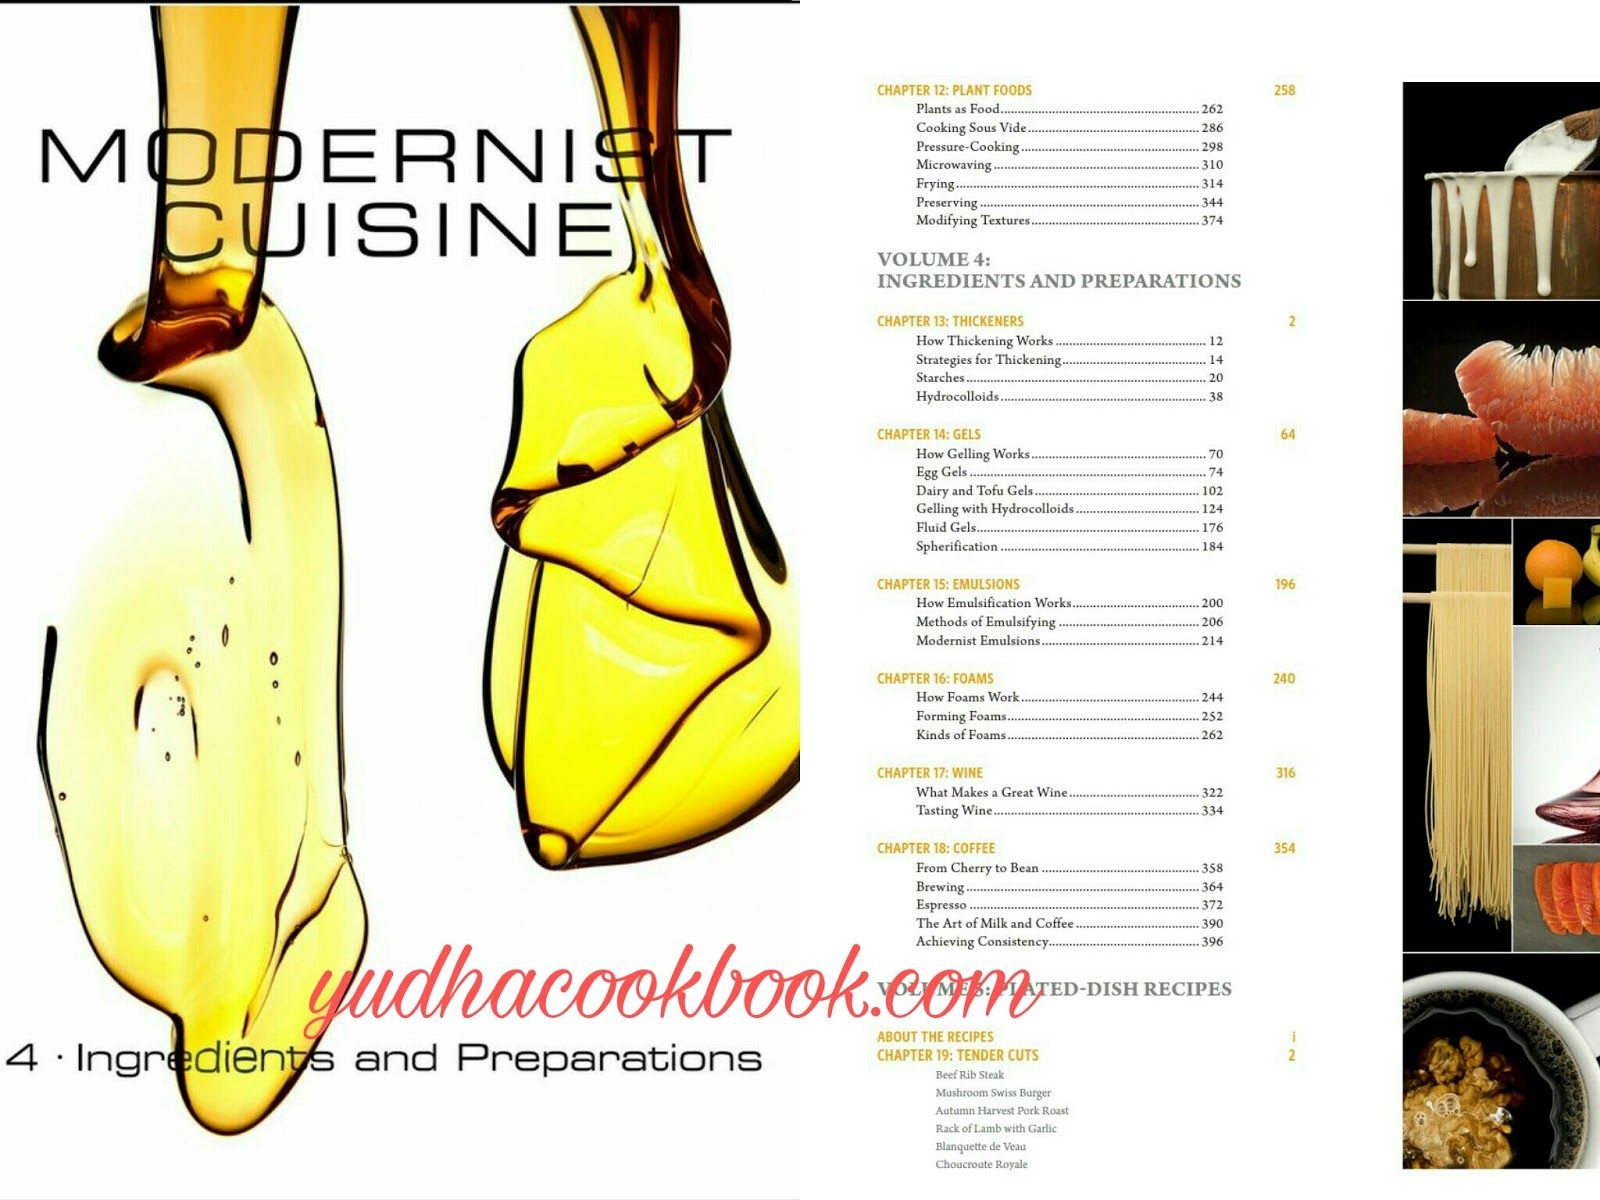 Download MODERNIST CUISINE [VOLUME 4] - INGREDIENTS AND PREPARATIONS ...